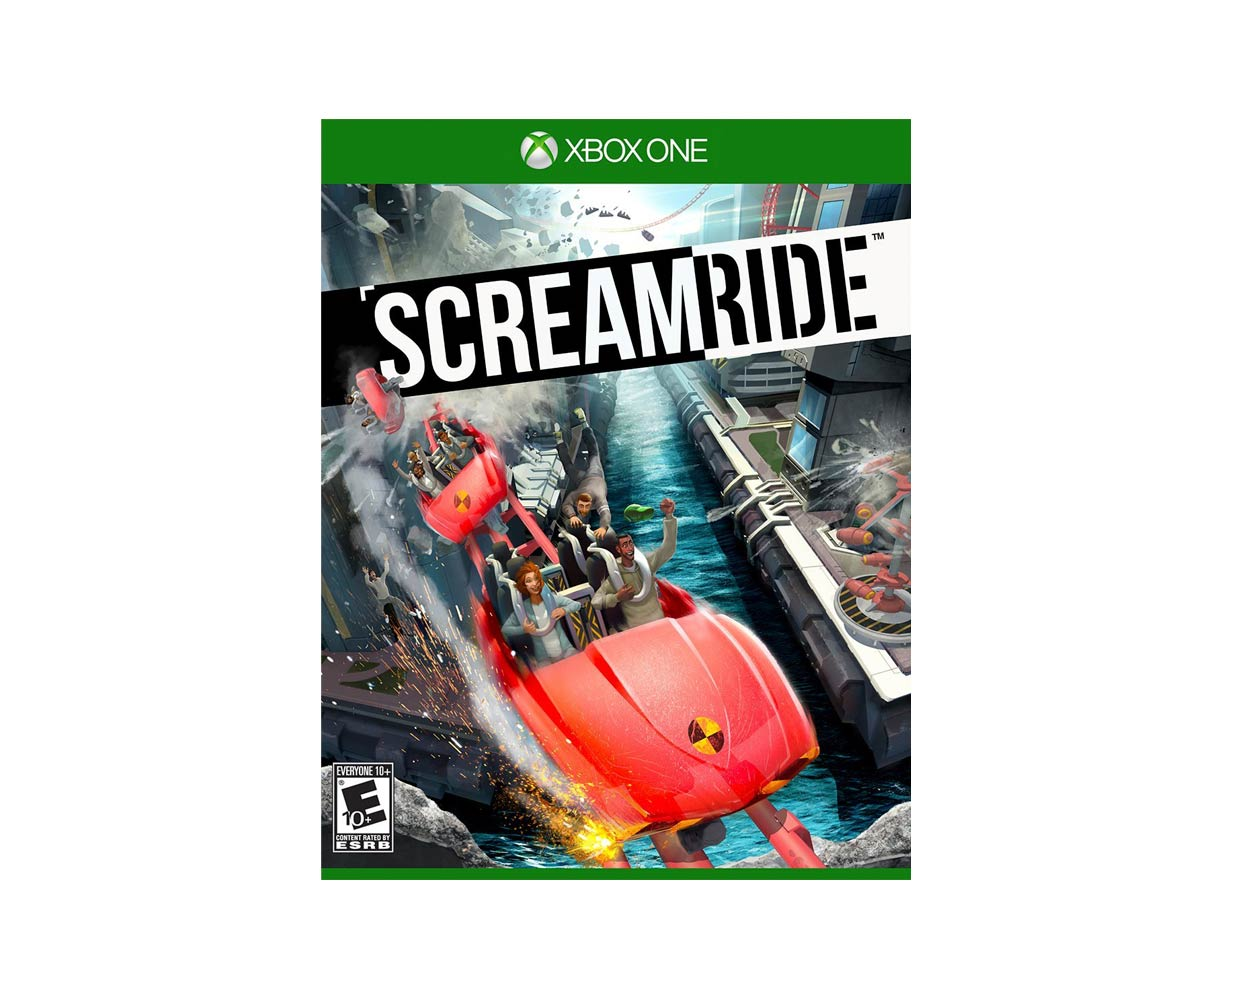 Видео игры: Screamride Xbox One, фотография №1